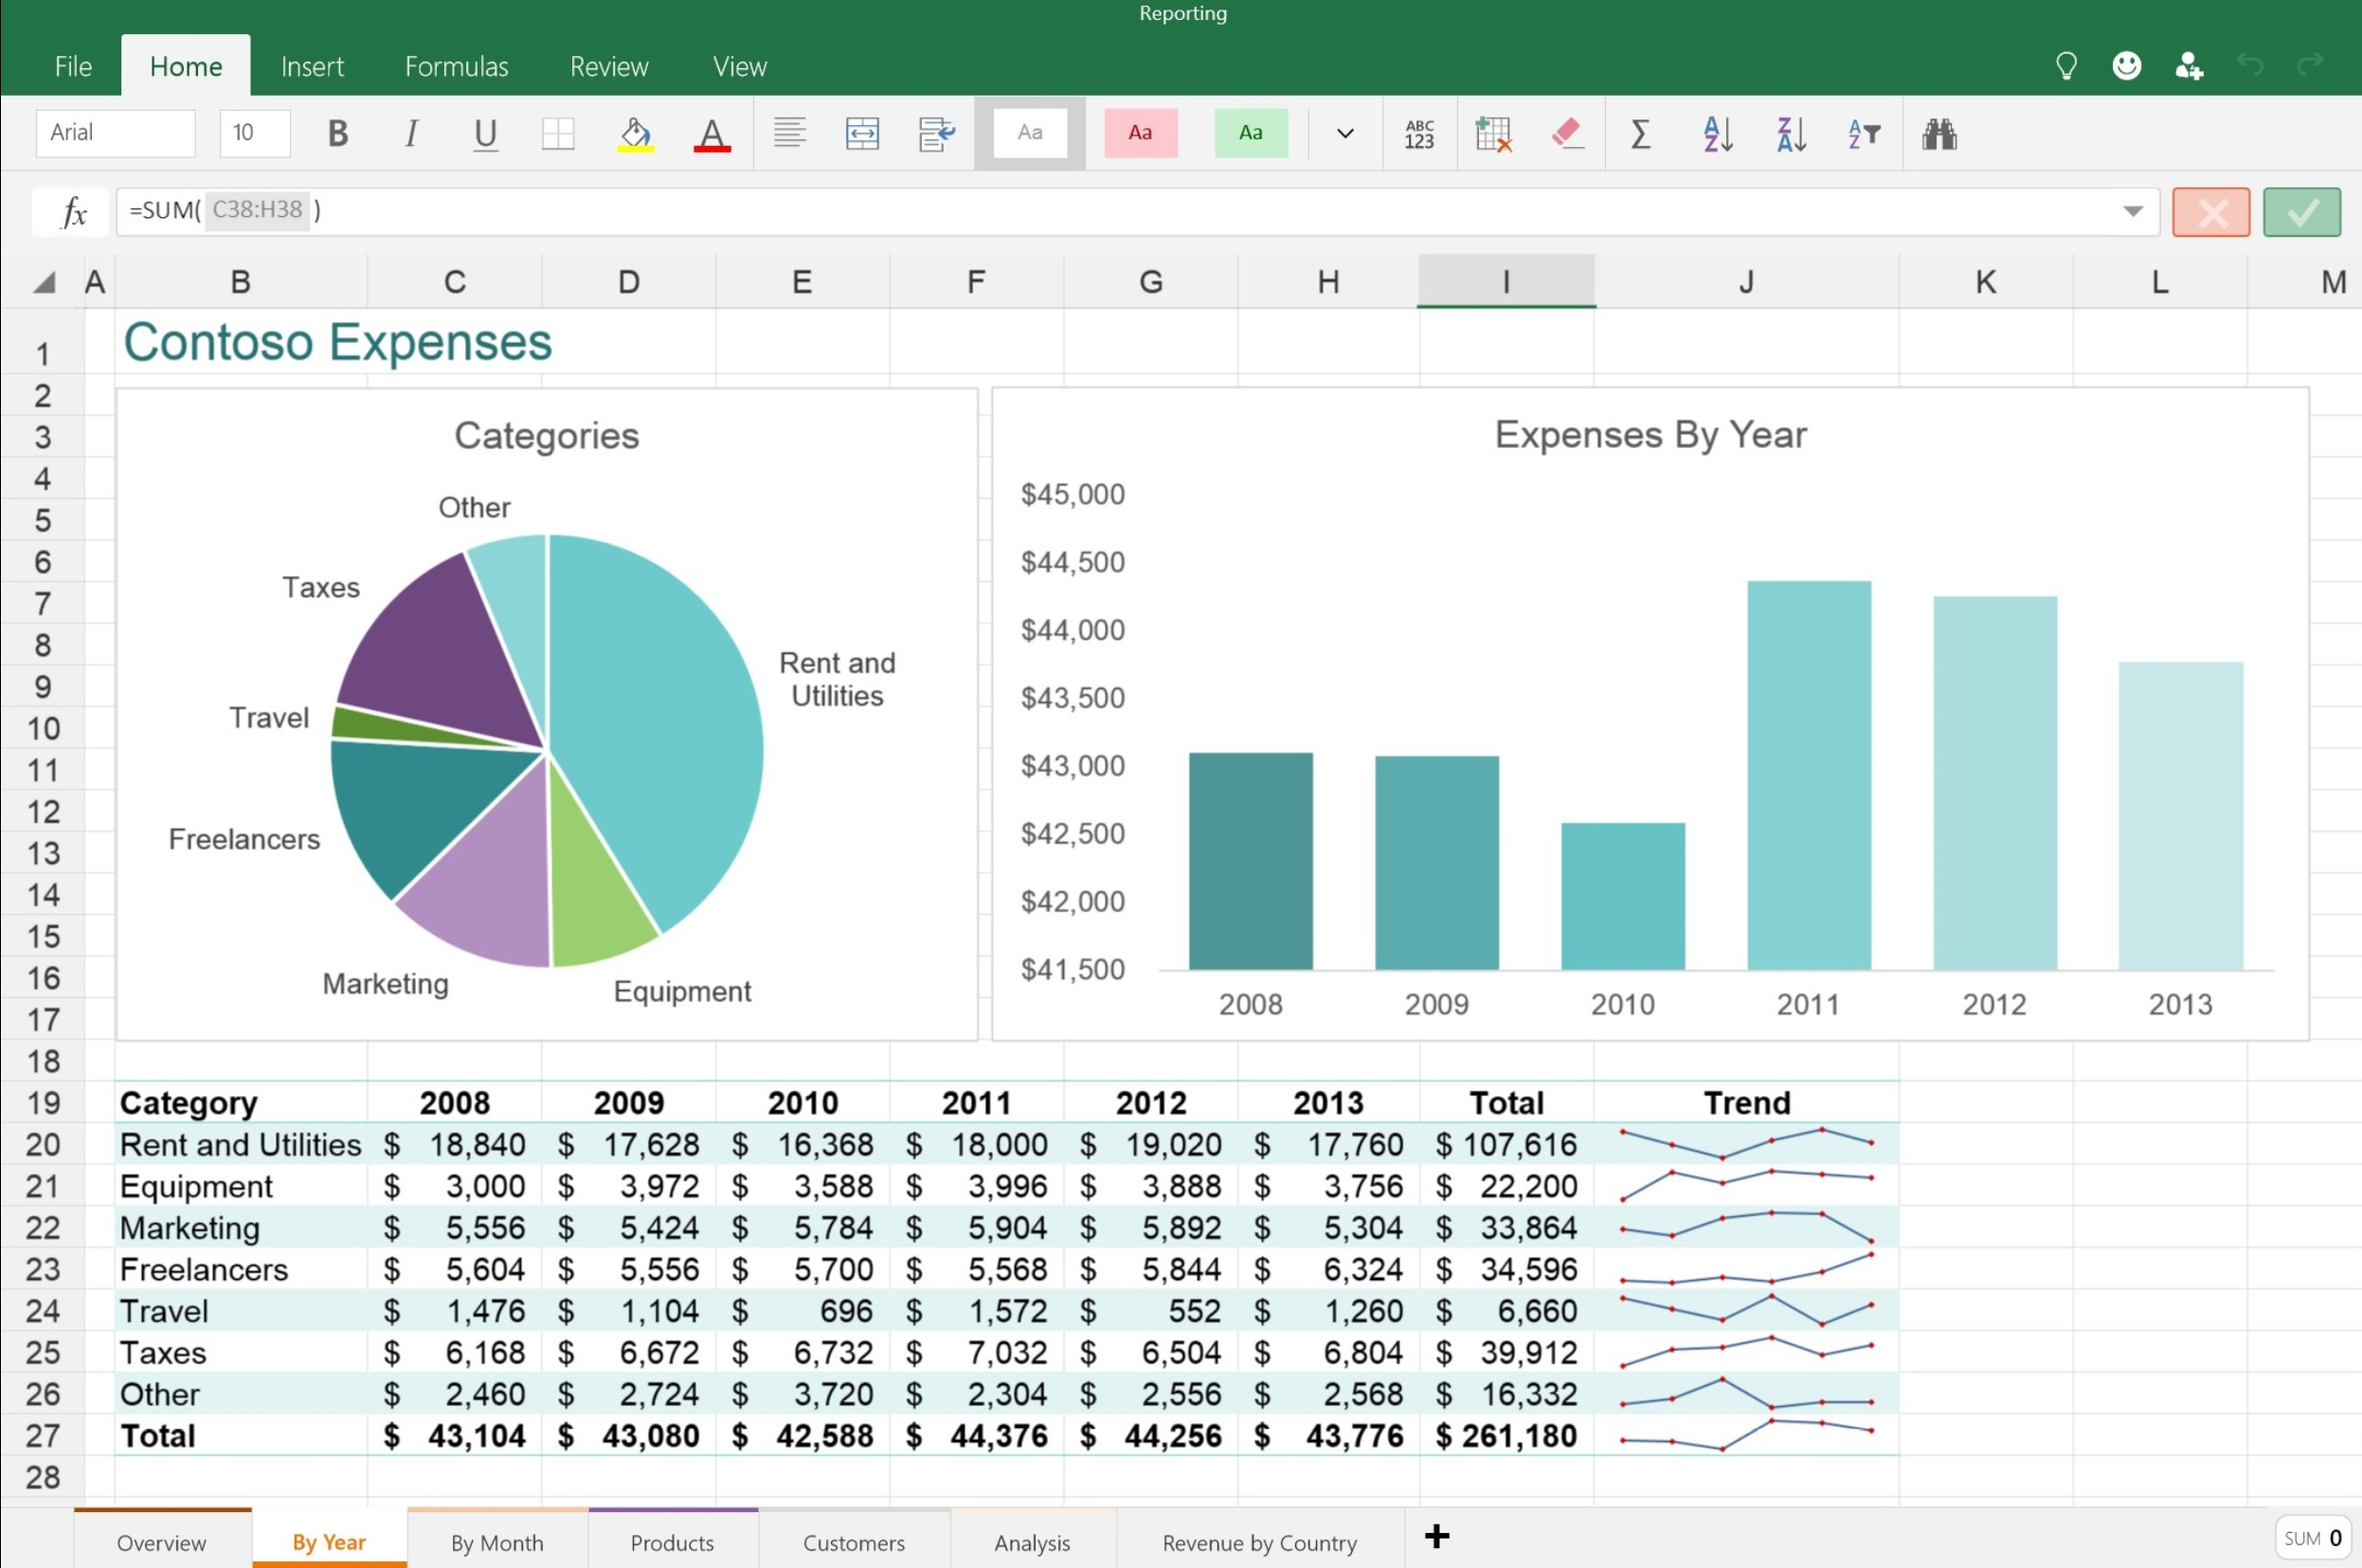 Ediblewildsus  Remarkable Features Available In The New Word Excel And Powerpoint Apps For  With Remarkable Excel Touch App  With Endearing Excel Functions For Finance Also Excel Mac  Data Analysis In Addition How To Merge Two Columns Into One In Excel And Excel Function Replace As Well As Excel Formulas Don T Work Additionally T Test Excel Type From Mspowerusercom With Ediblewildsus  Remarkable Features Available In The New Word Excel And Powerpoint Apps For  With Endearing Excel Touch App  And Remarkable Excel Functions For Finance Also Excel Mac  Data Analysis In Addition How To Merge Two Columns Into One In Excel From Mspowerusercom